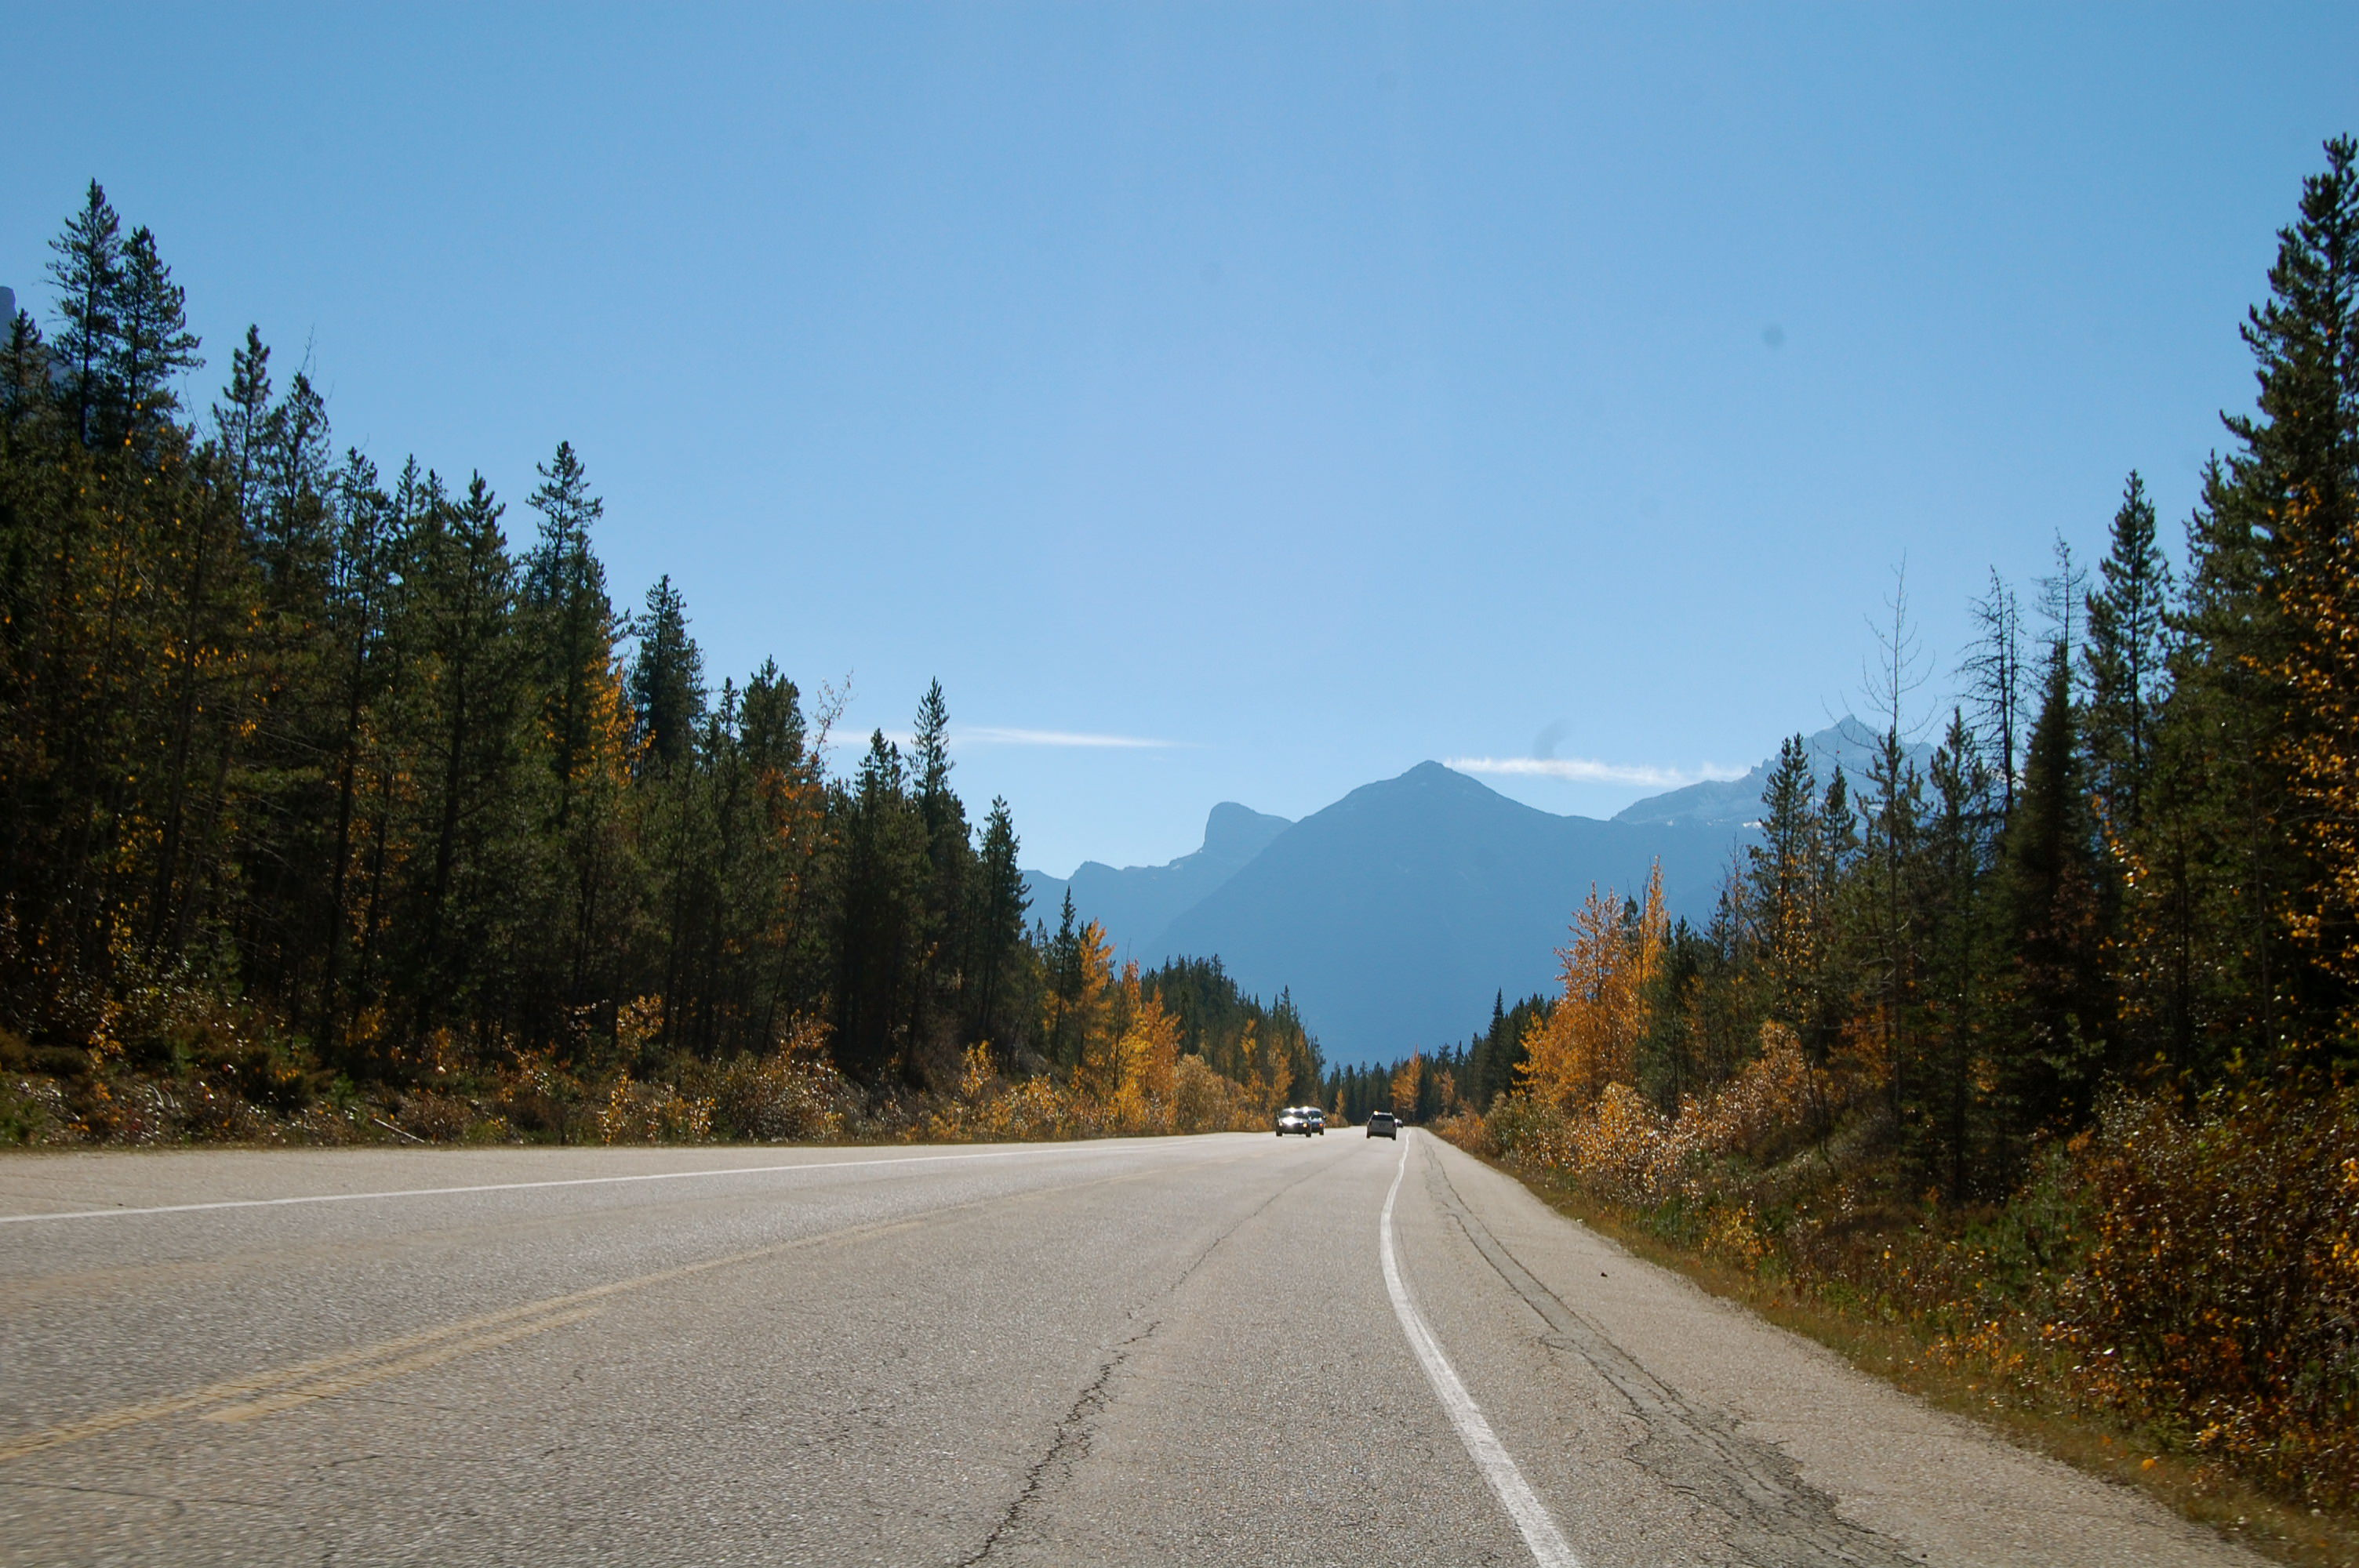 Road, mountains, trees in British Columbia